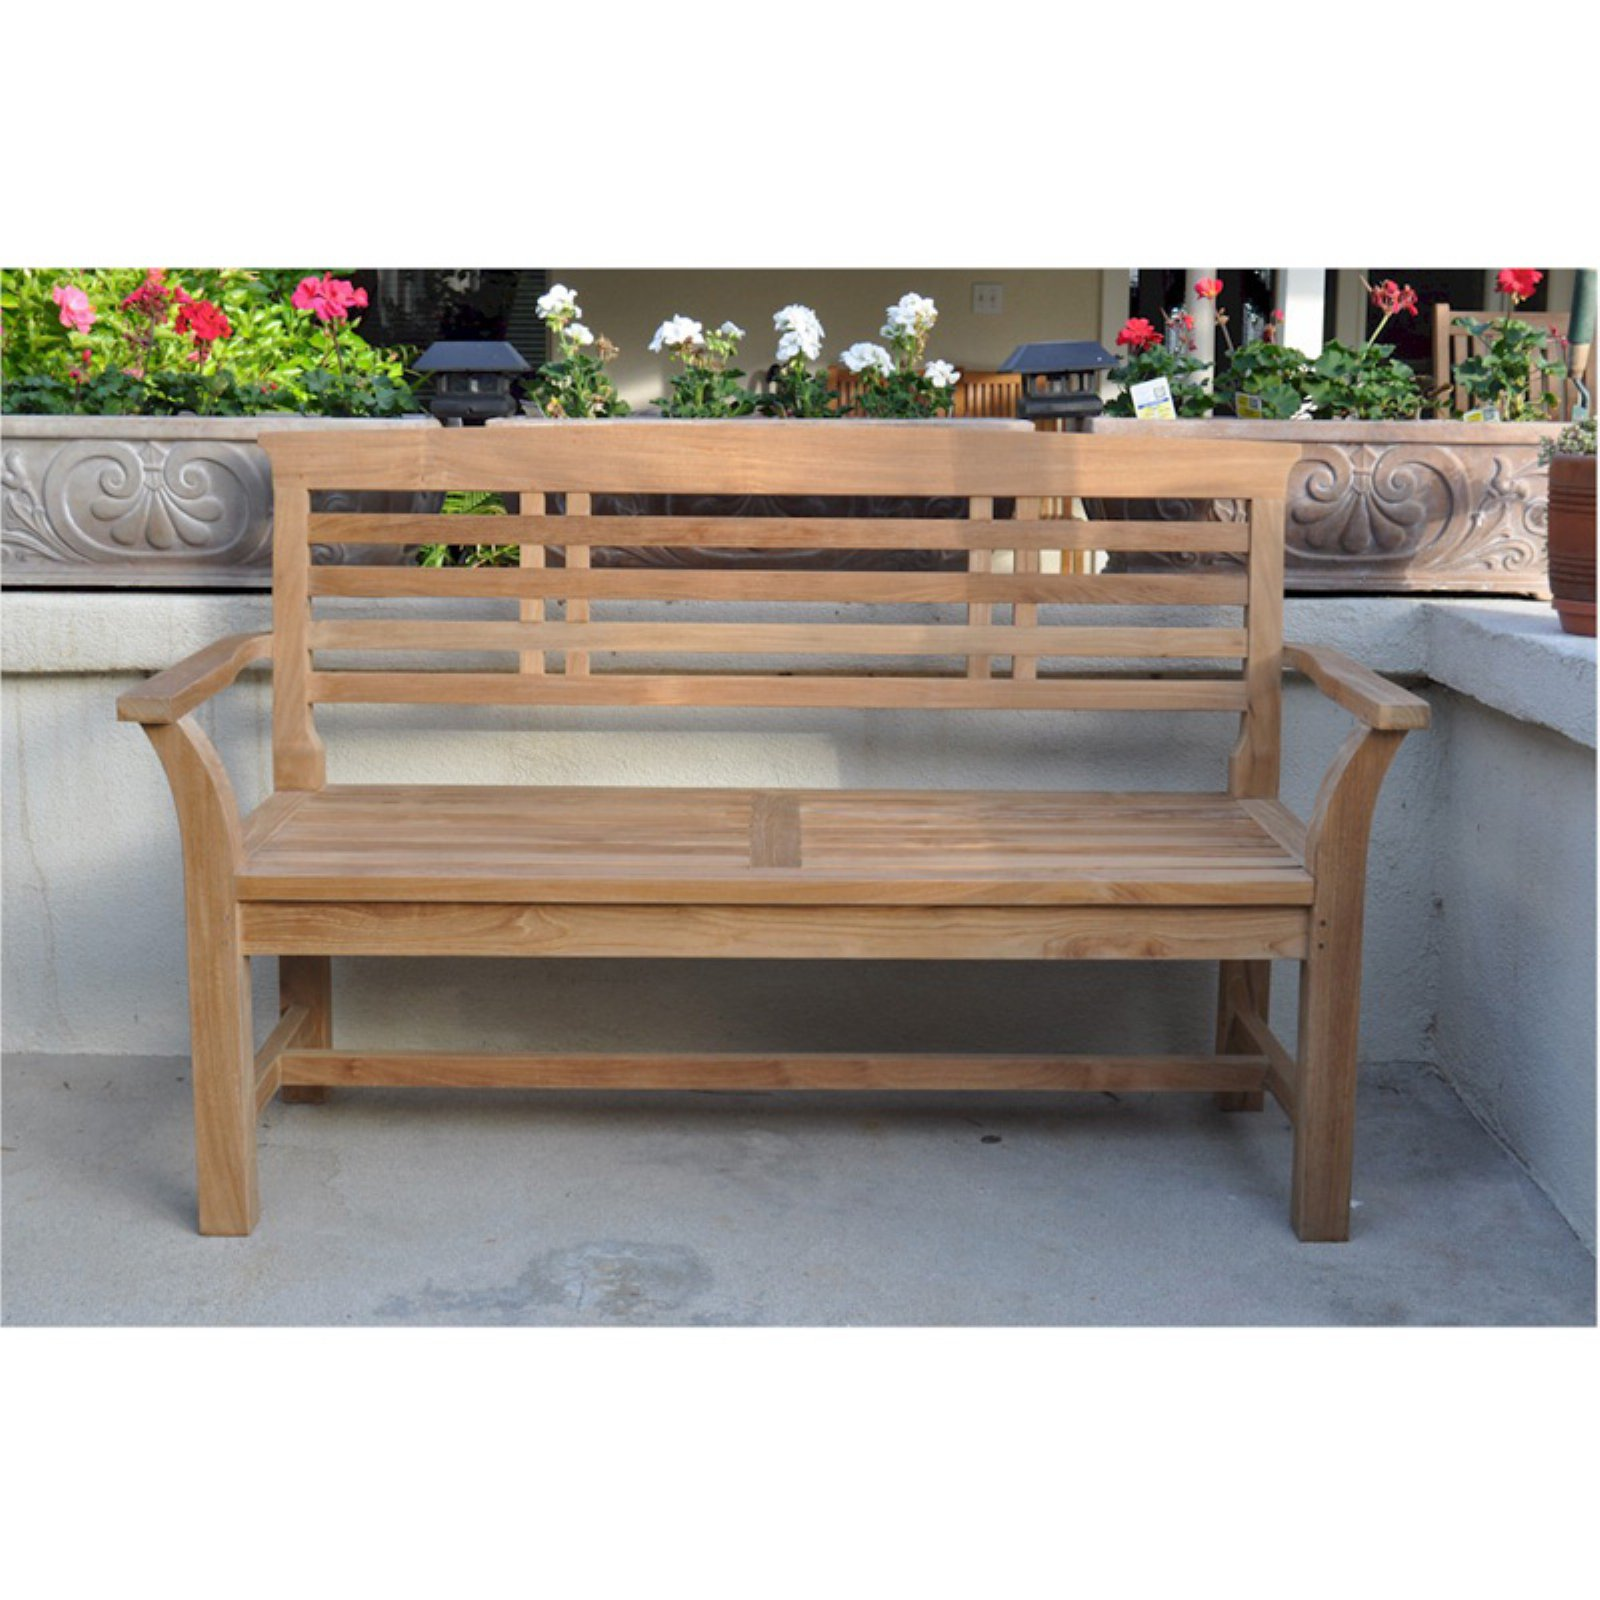 Anderson Teak Sakura 2 Seat 4.7 ft. Outdoor Bench by Anderson